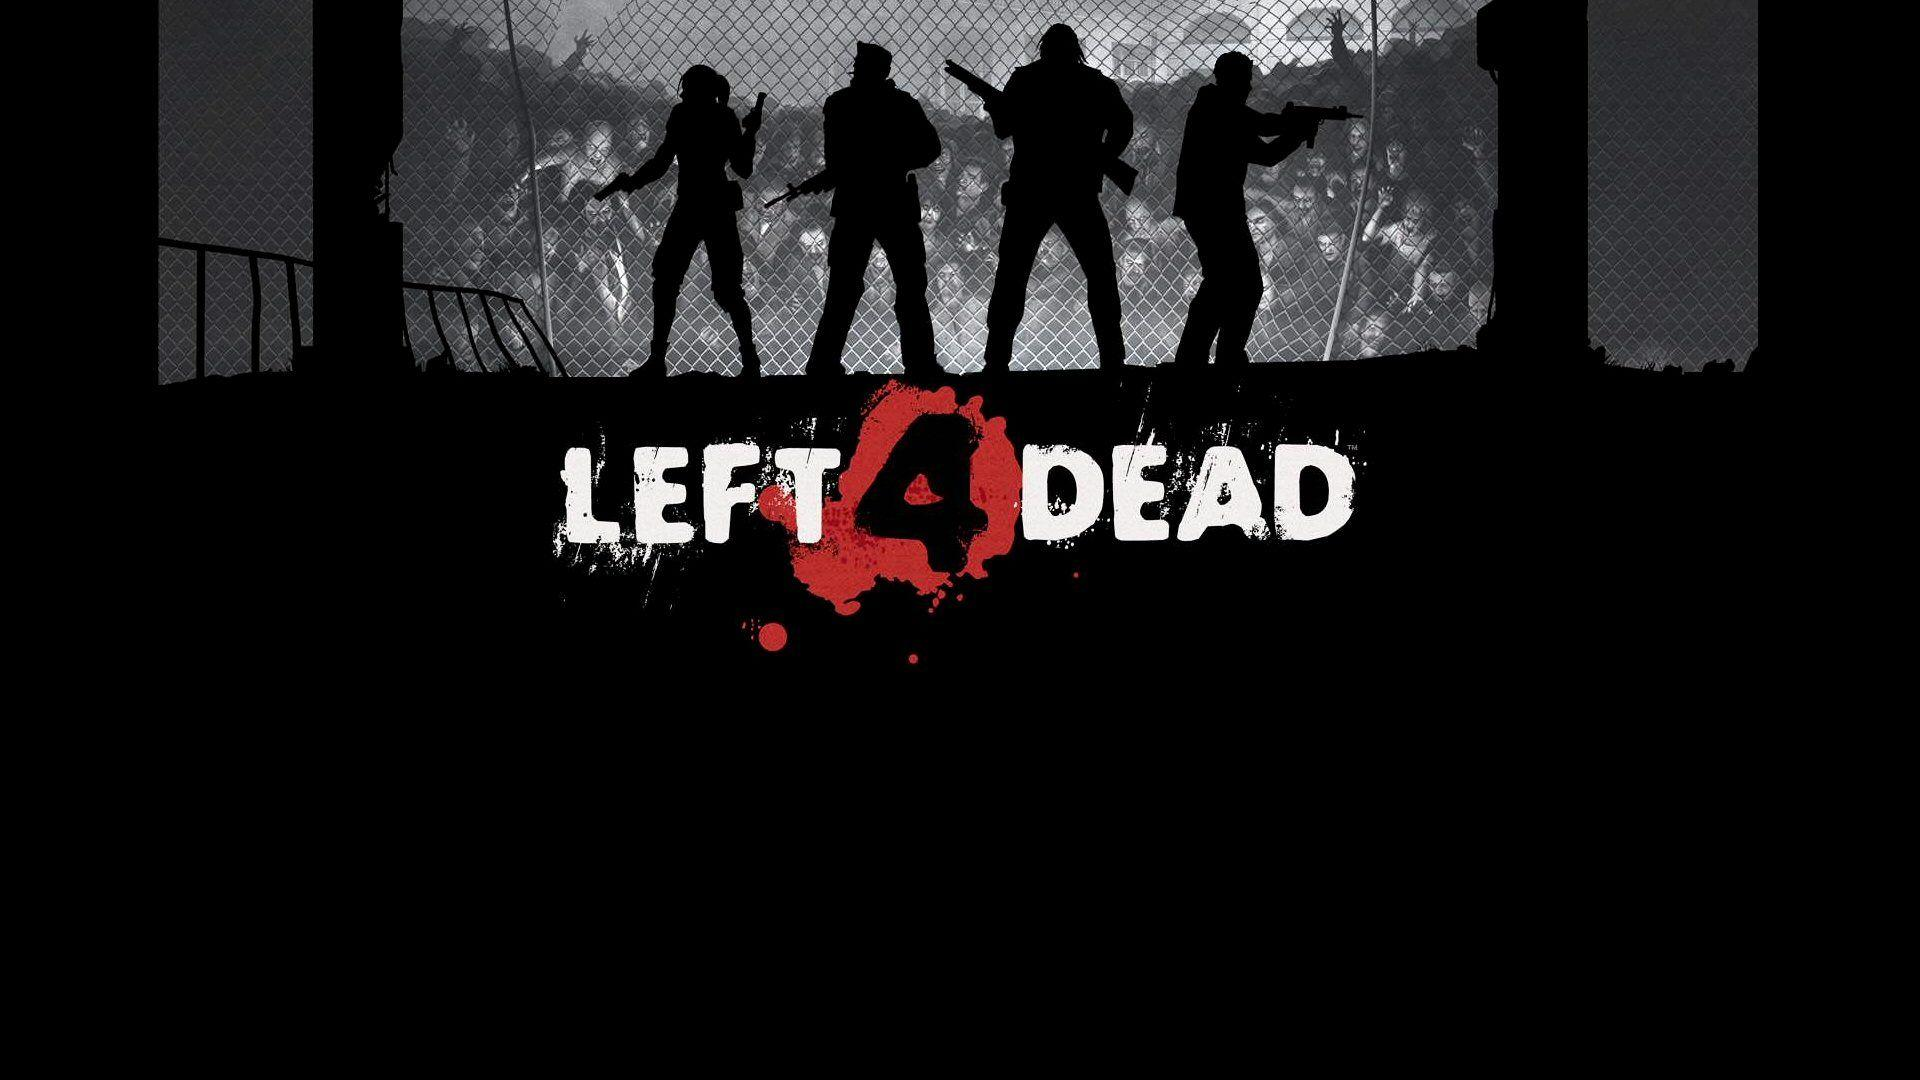 Left 4 Dead Witch Wallpapers - Wallpaper Cave